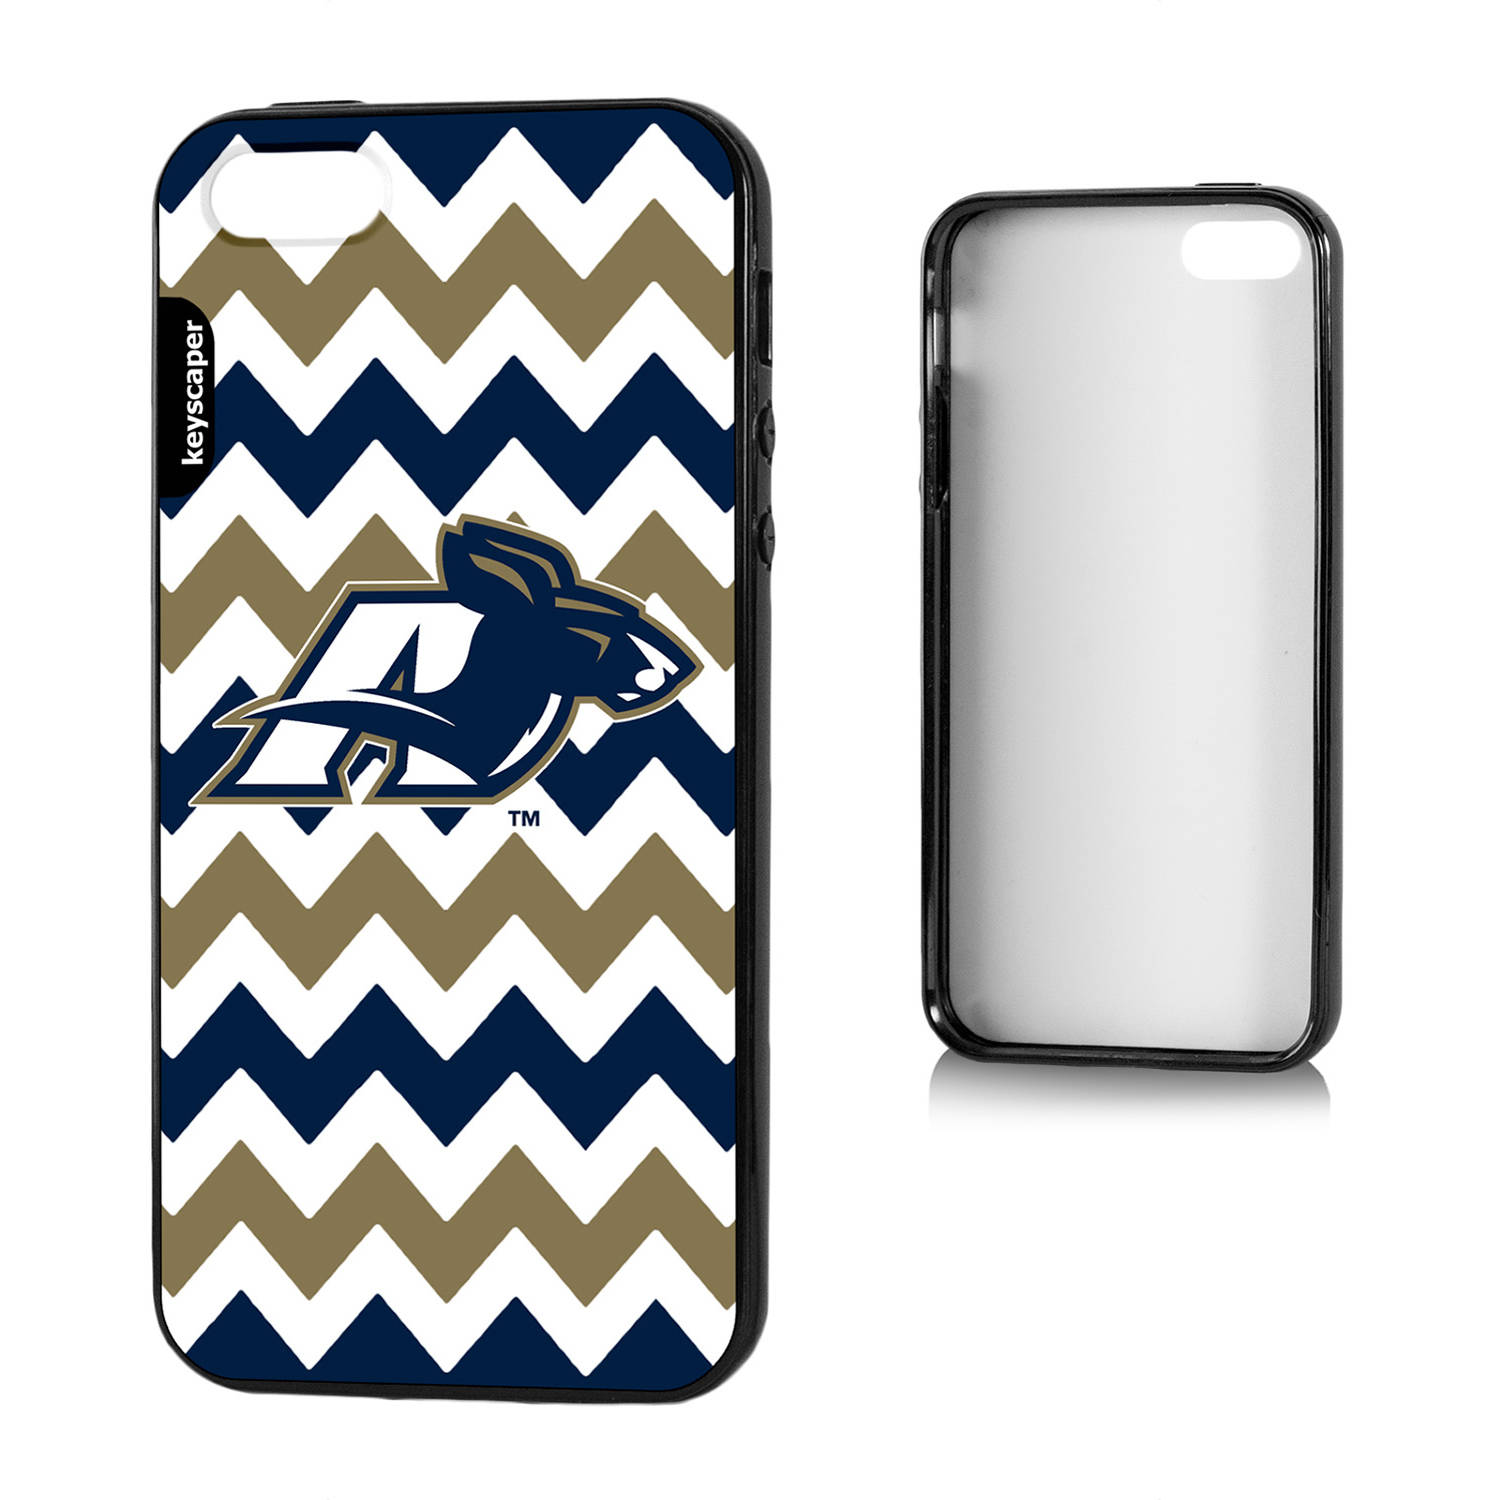 Akron Apple iPhone 5/5s Bumper Case